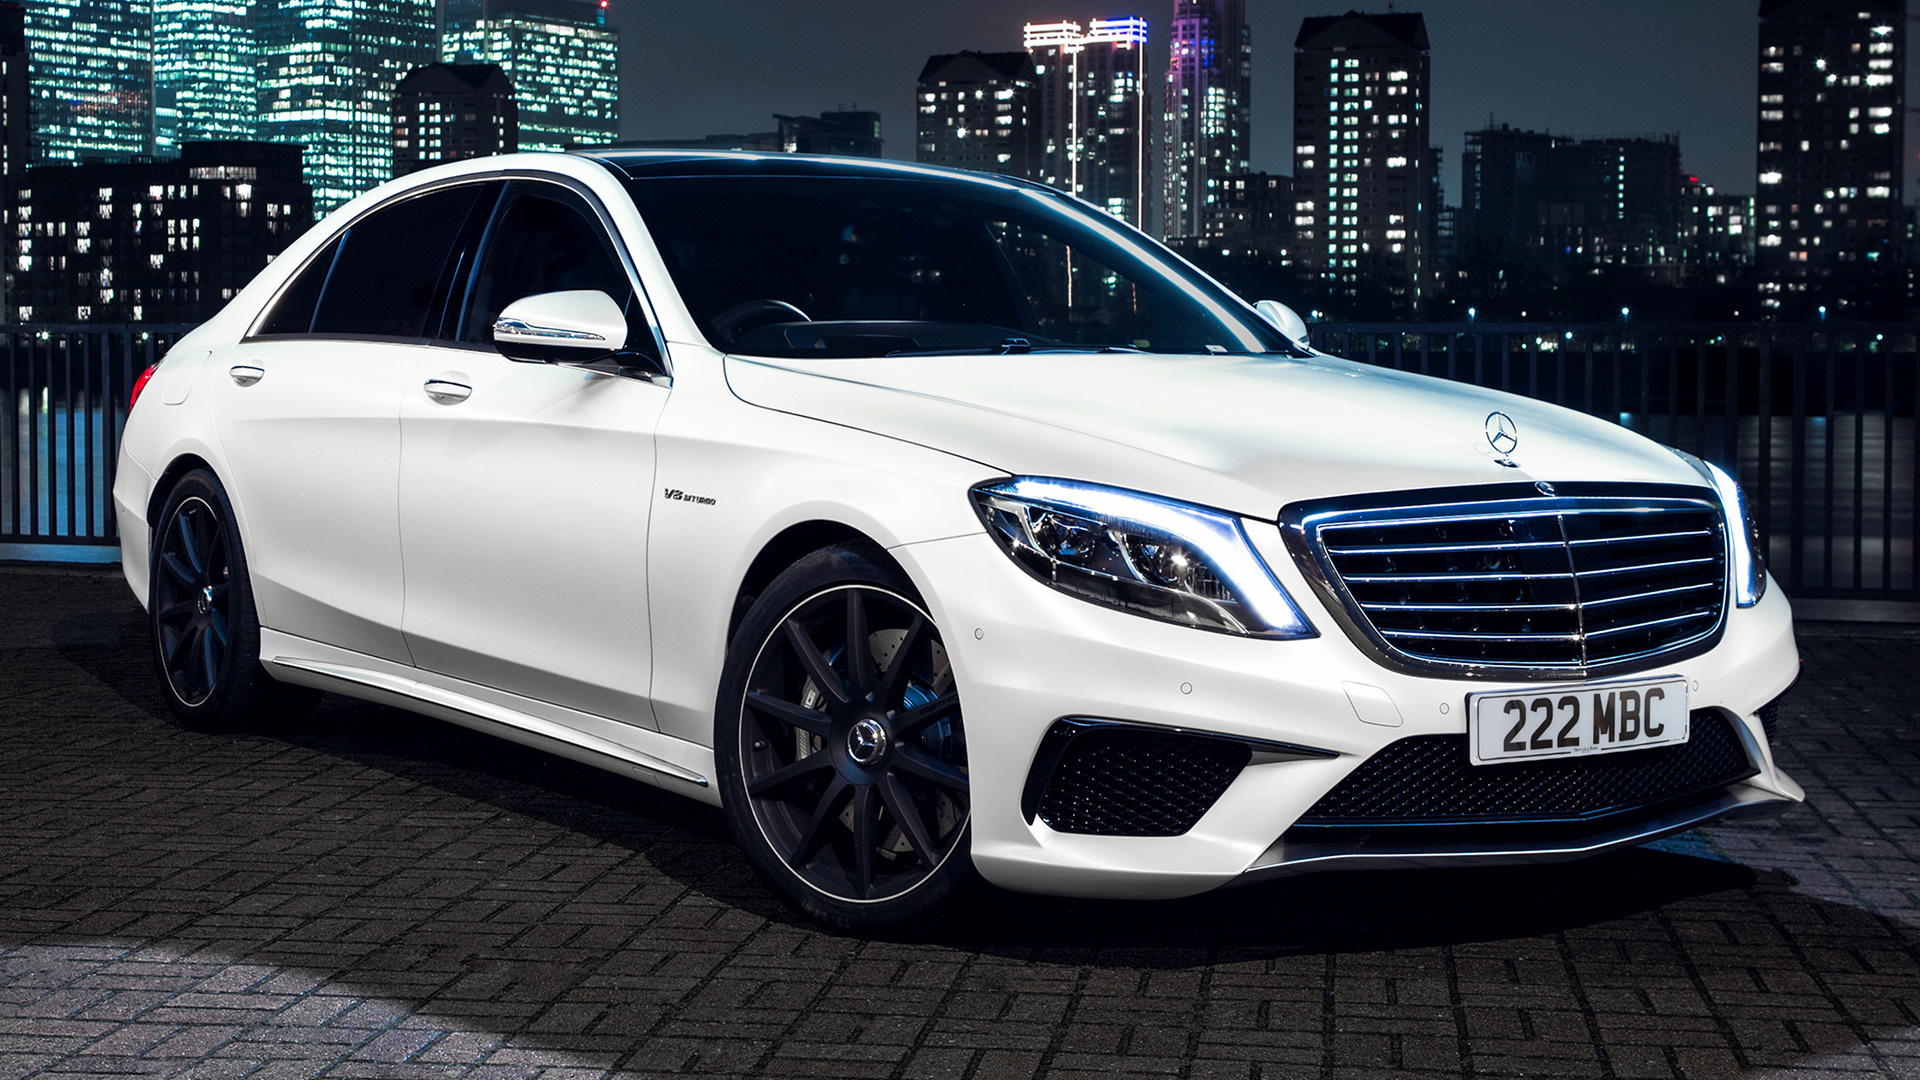 Mercedes Benz S 63 Amg Long 2013 Uk Wallpapers And Hd